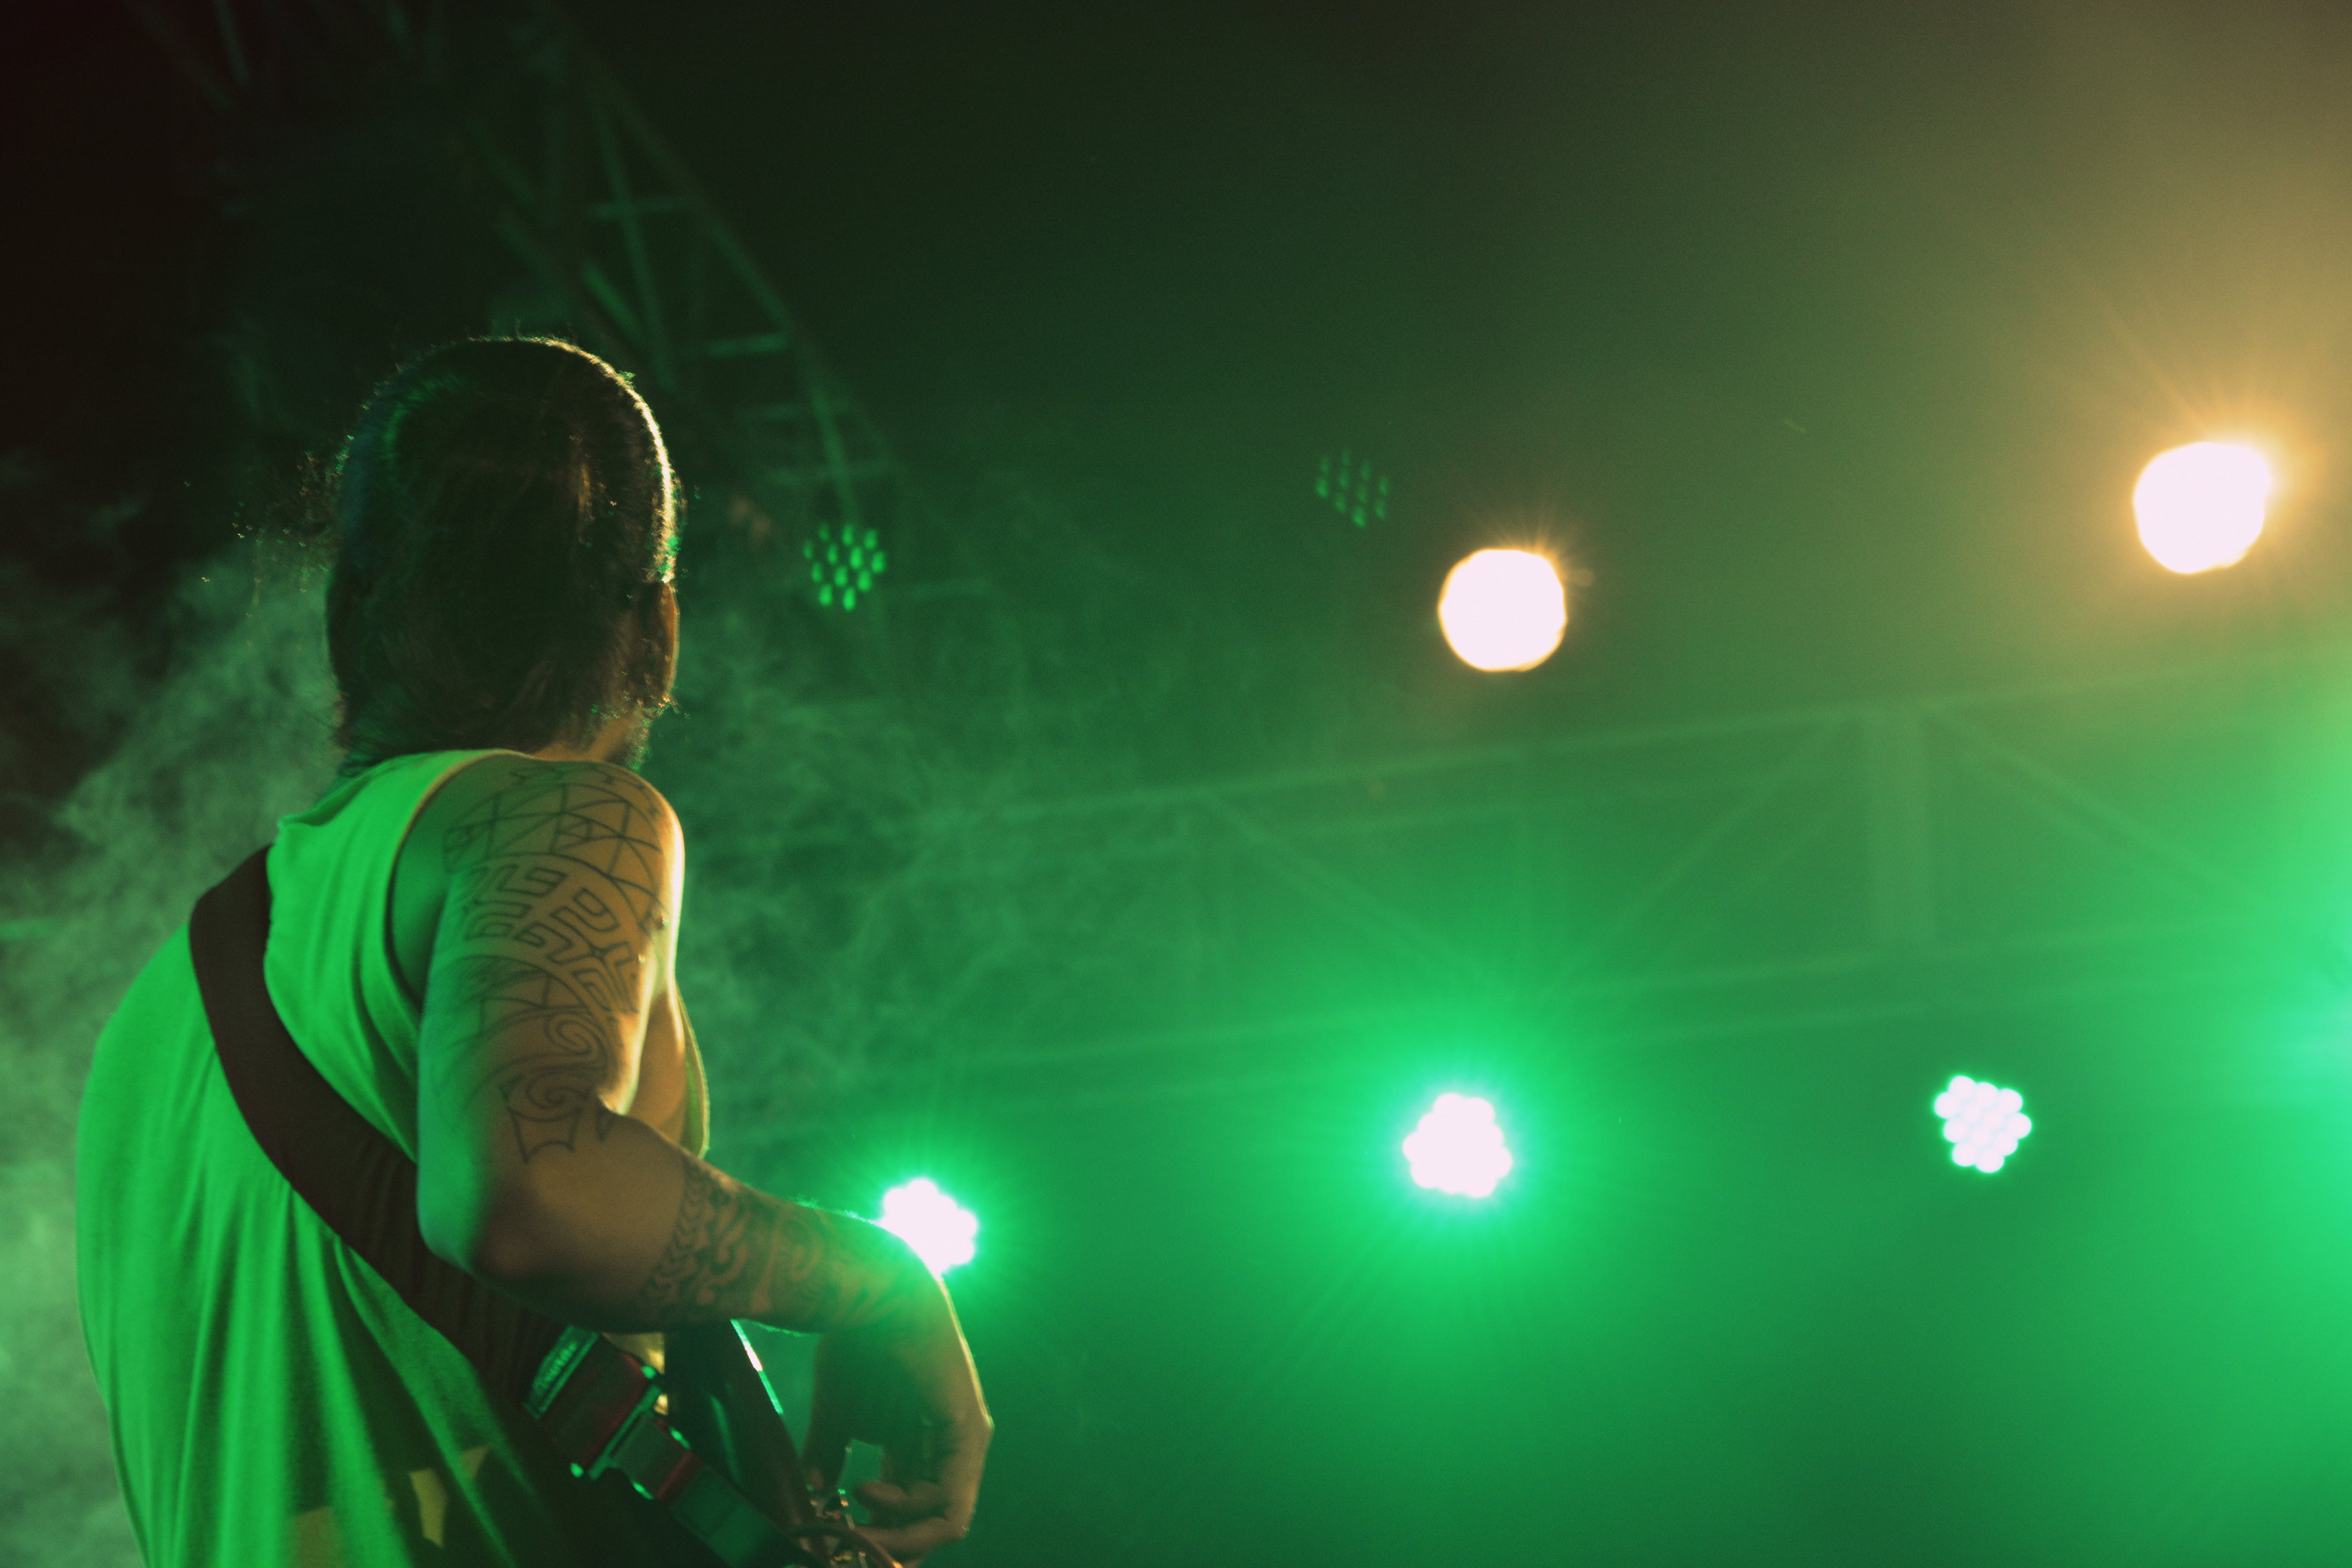 Free stock photo of green, guitar, live on stage, spotlights